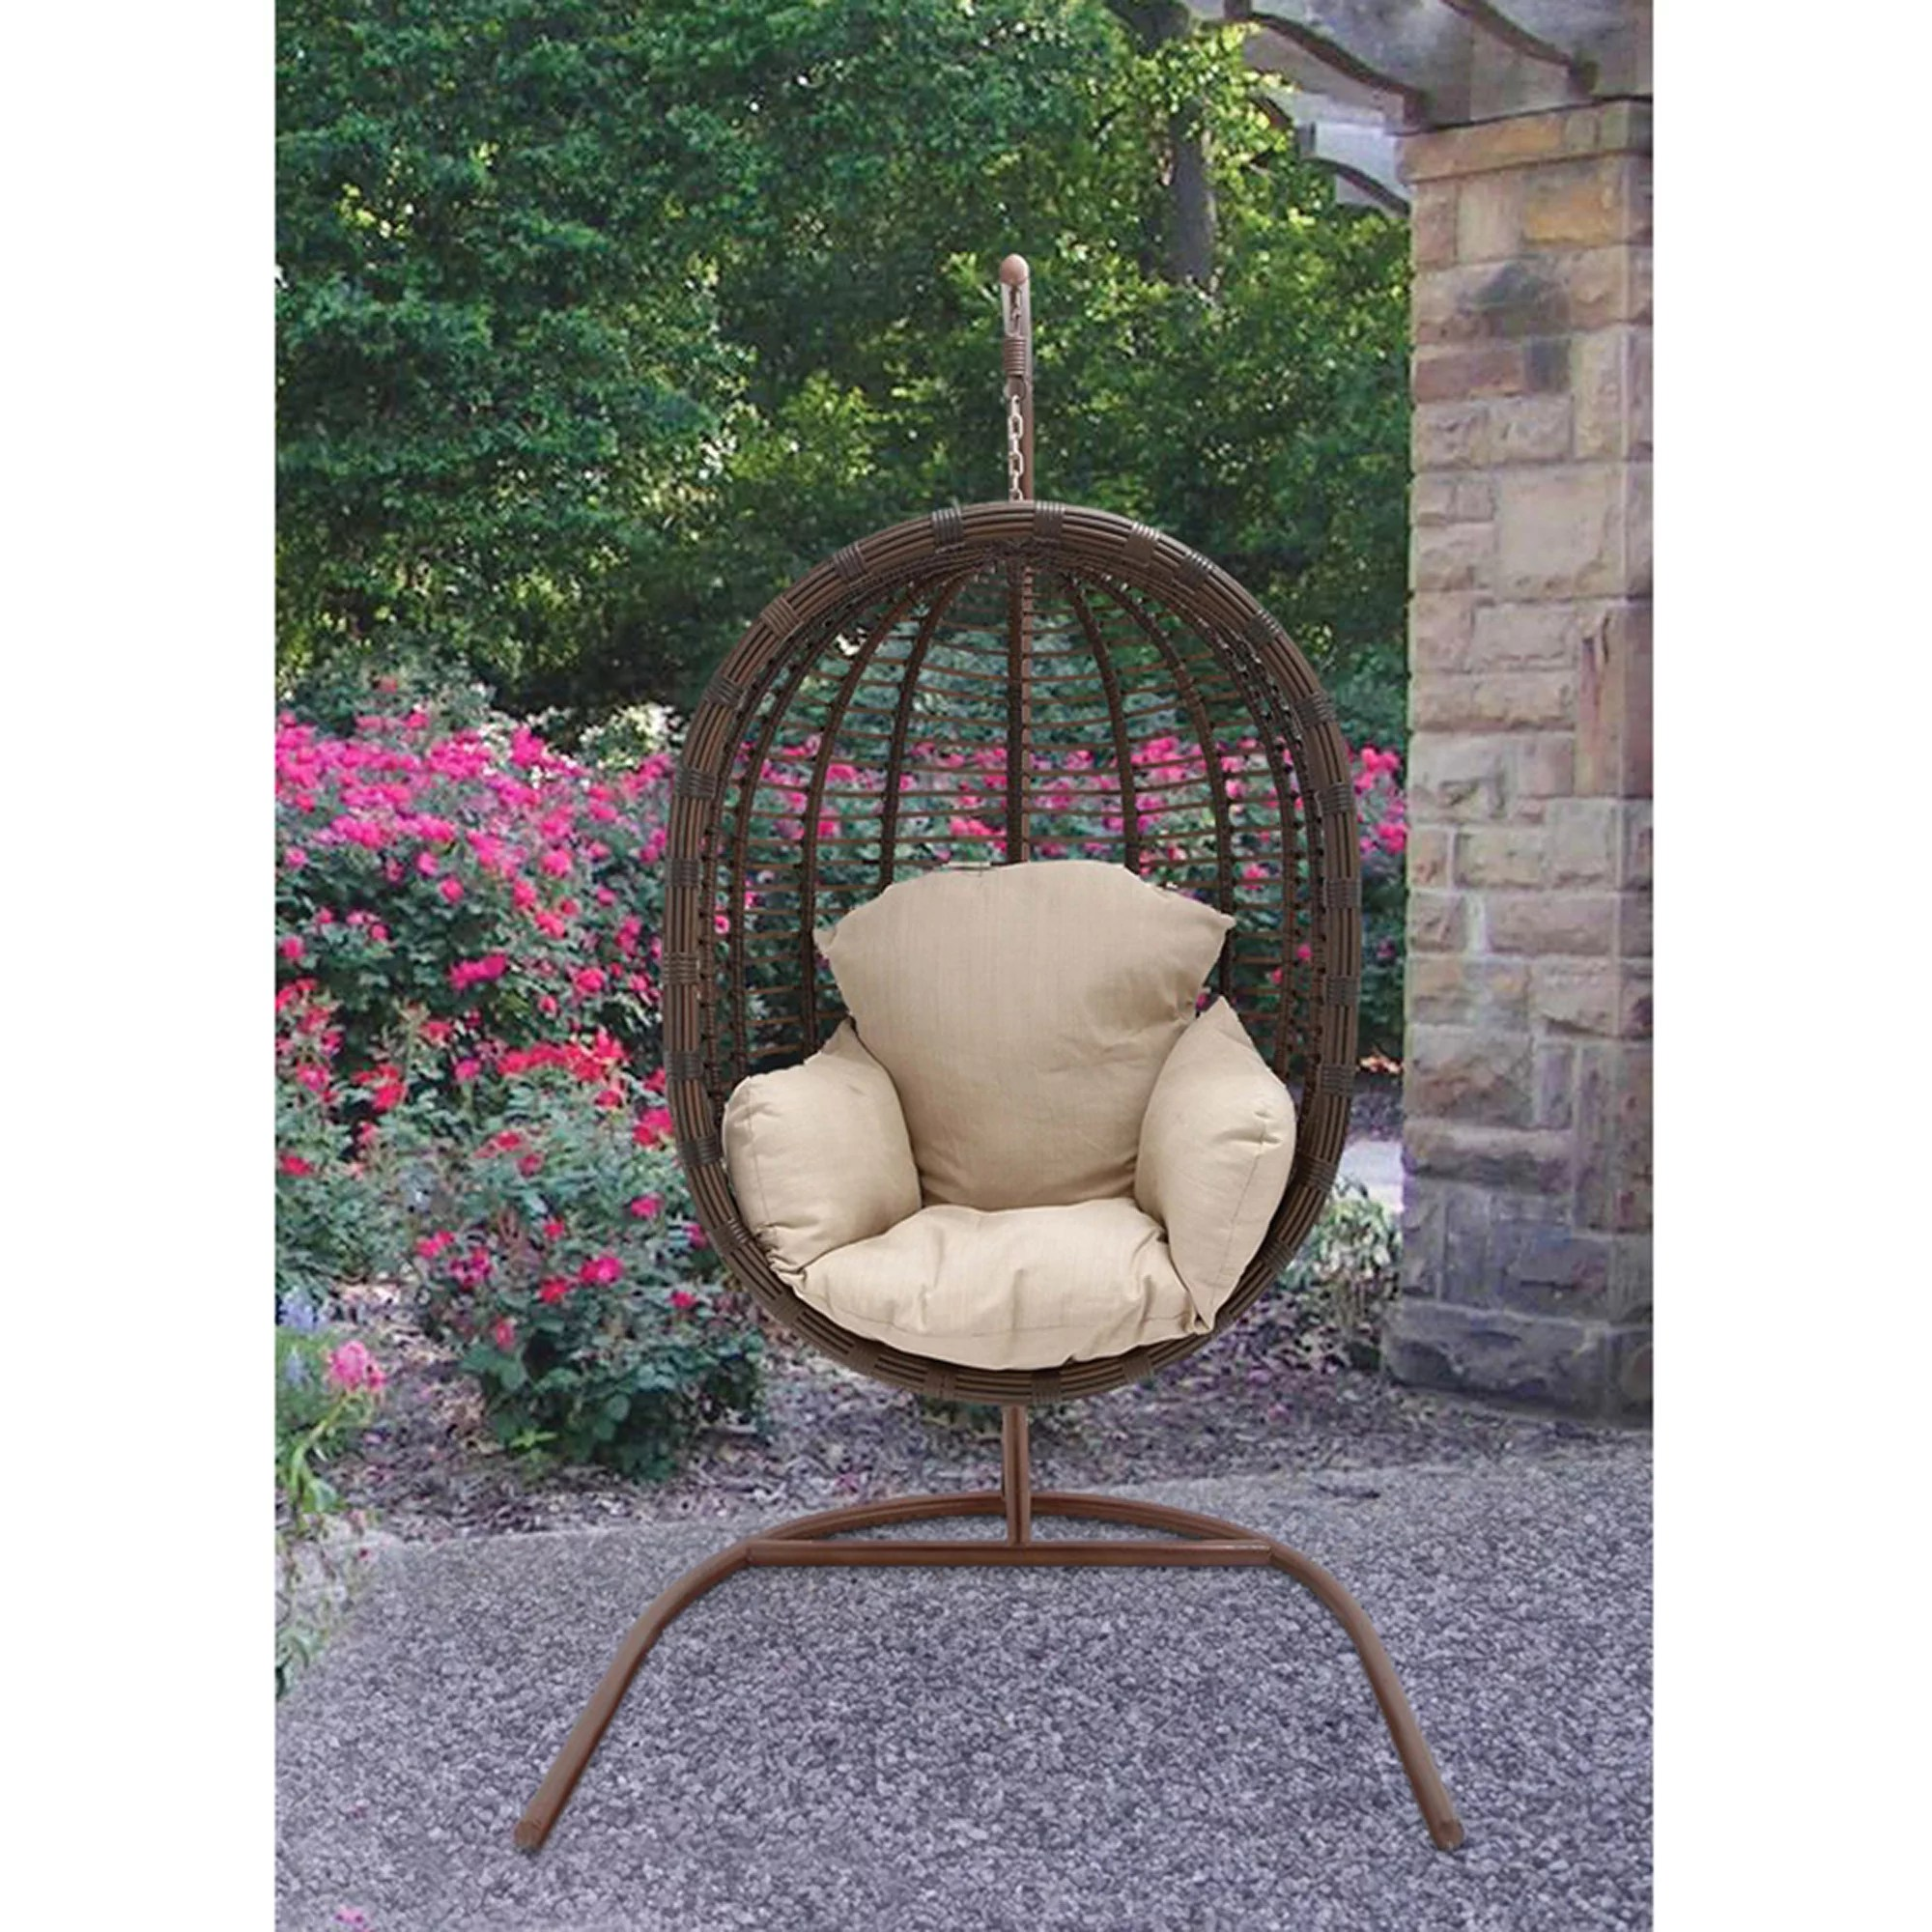 hanging chairs garden furniture movie theater for home hanover outdoor rattan wicker pod swing chair with full cream cushion walmart com